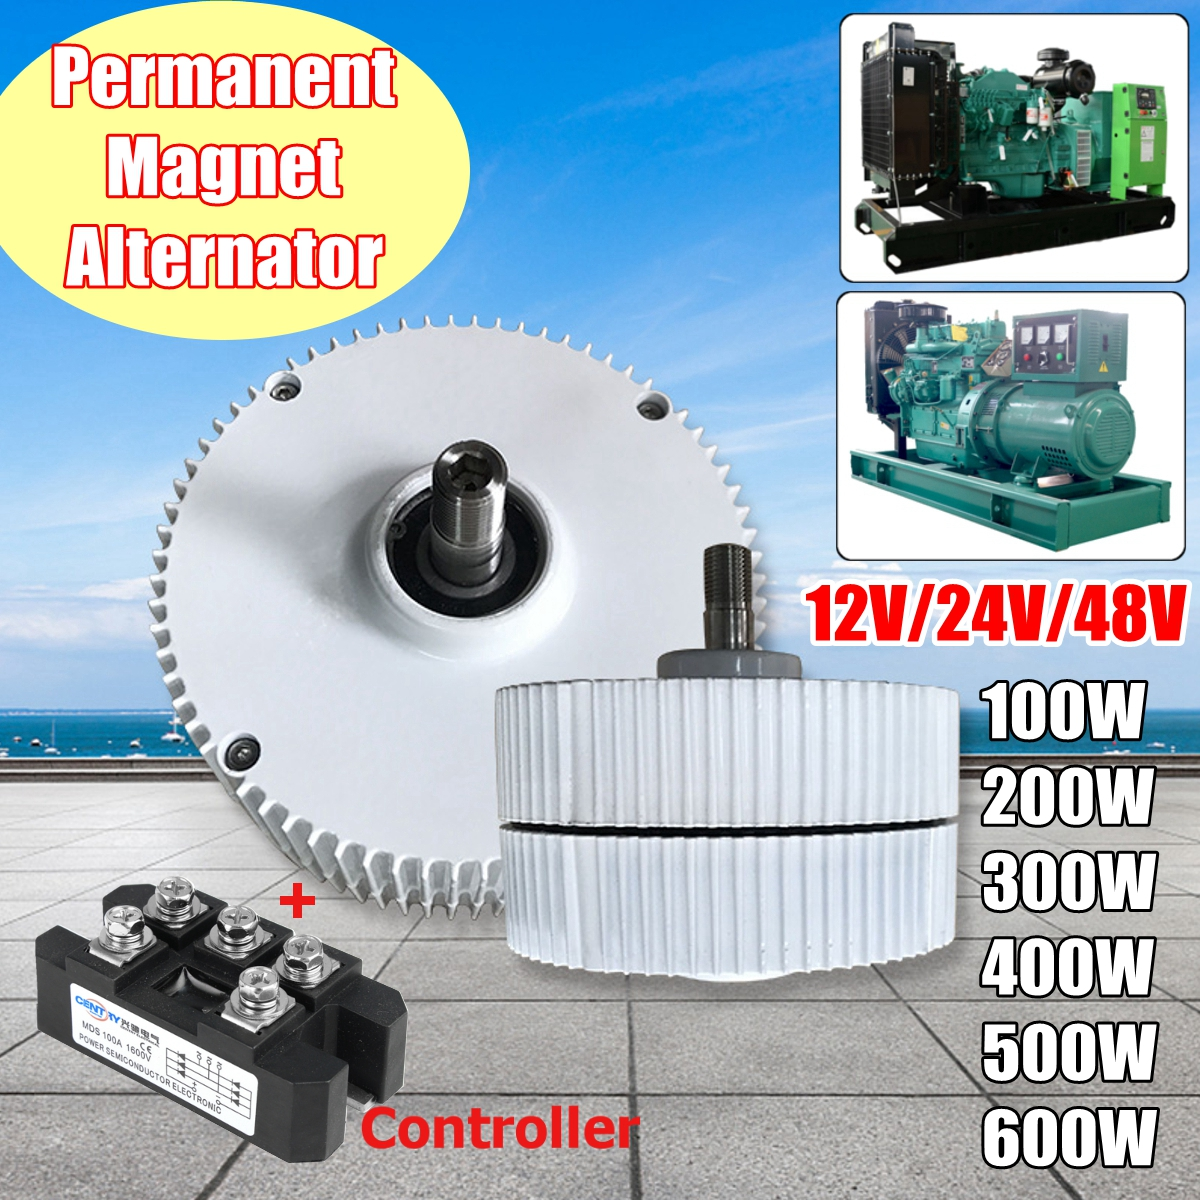 12V 600W YC-600 12V Permanent Magnet Alternator For Wind Turbine Generator + Controller US